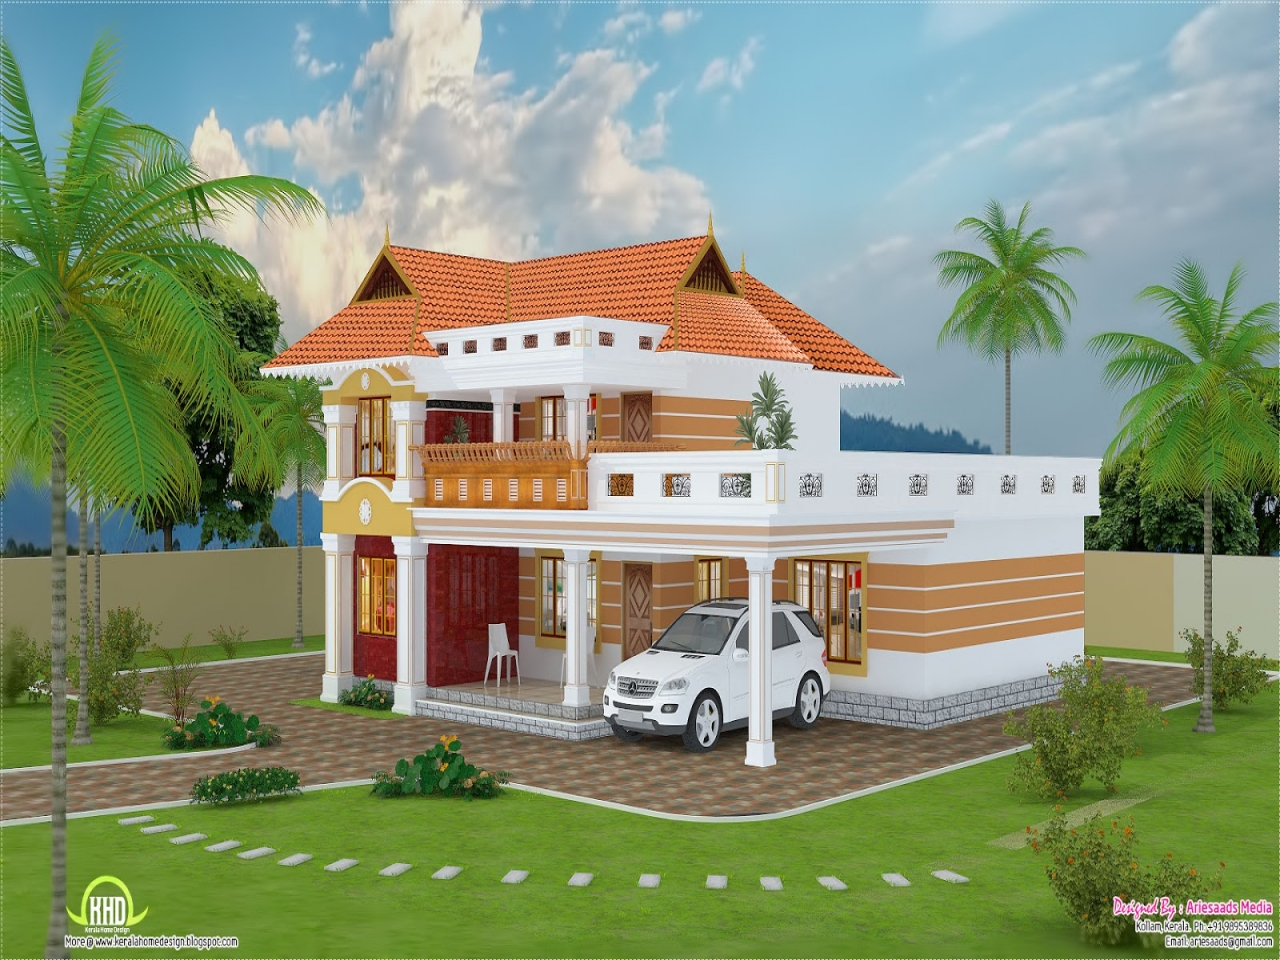 Most beautiful houses in the world most beautiful house for House beautiful house plans